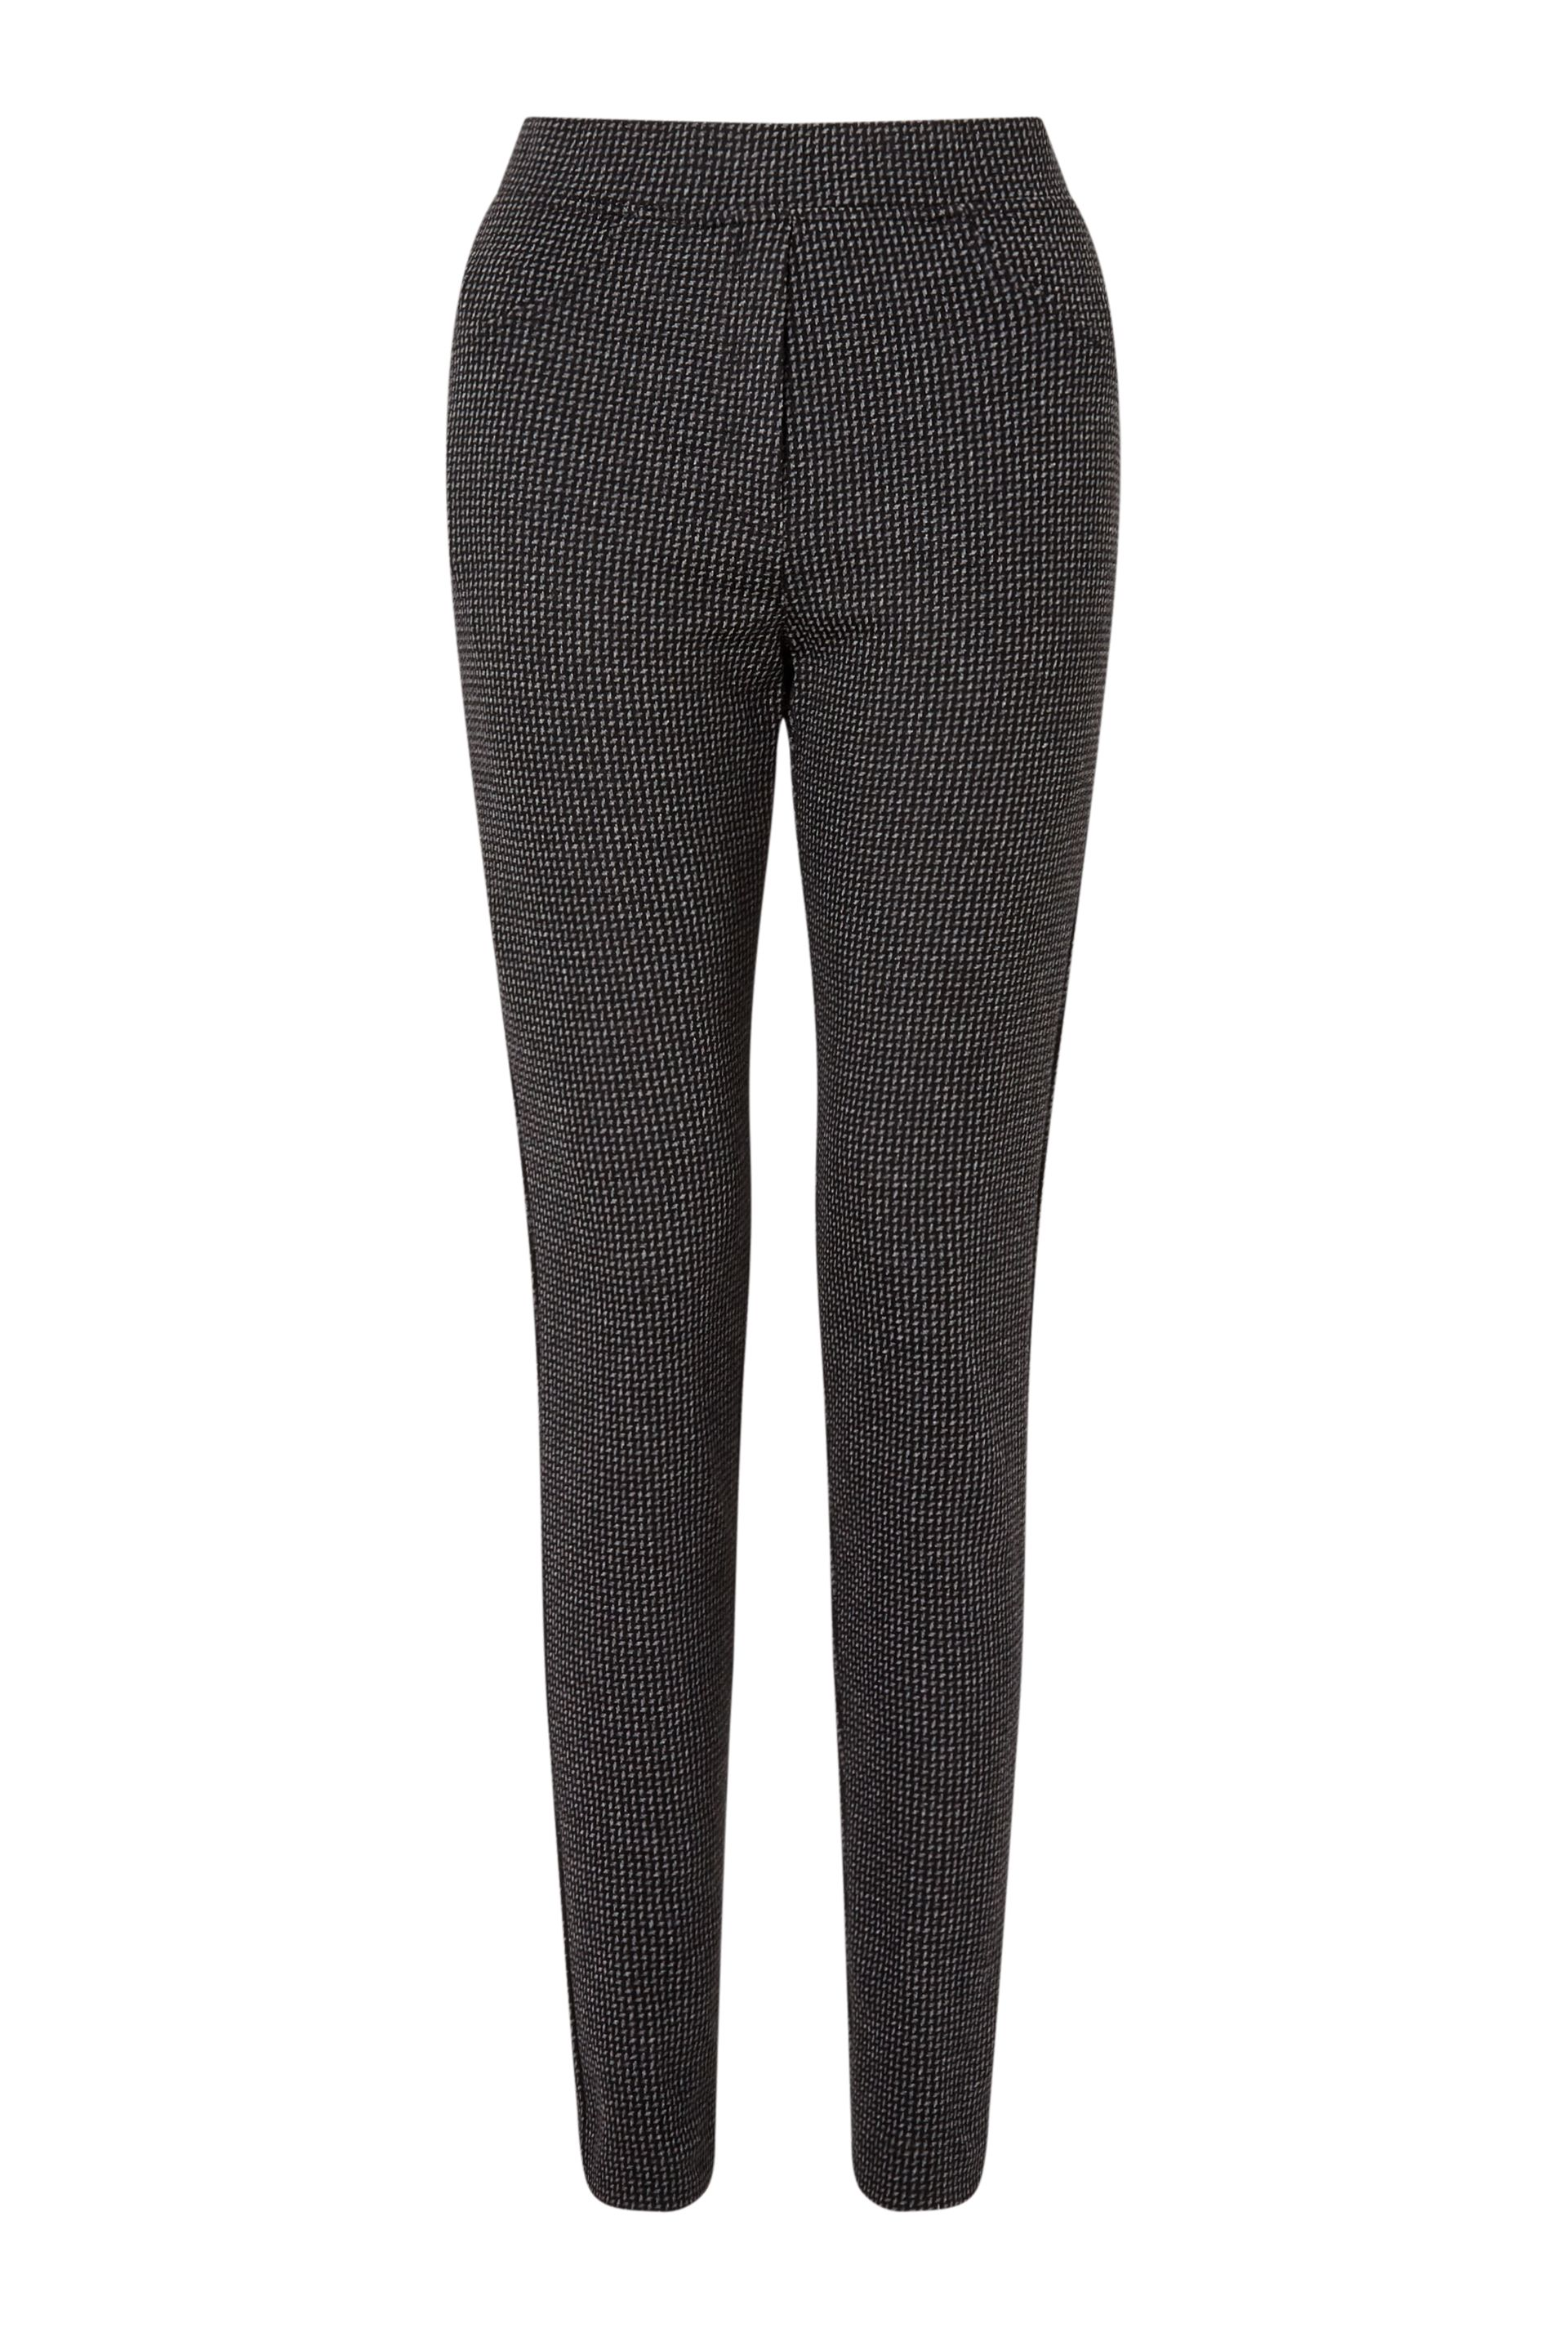 James Lakeland Jacquard Slim Leg Trouser, Grey